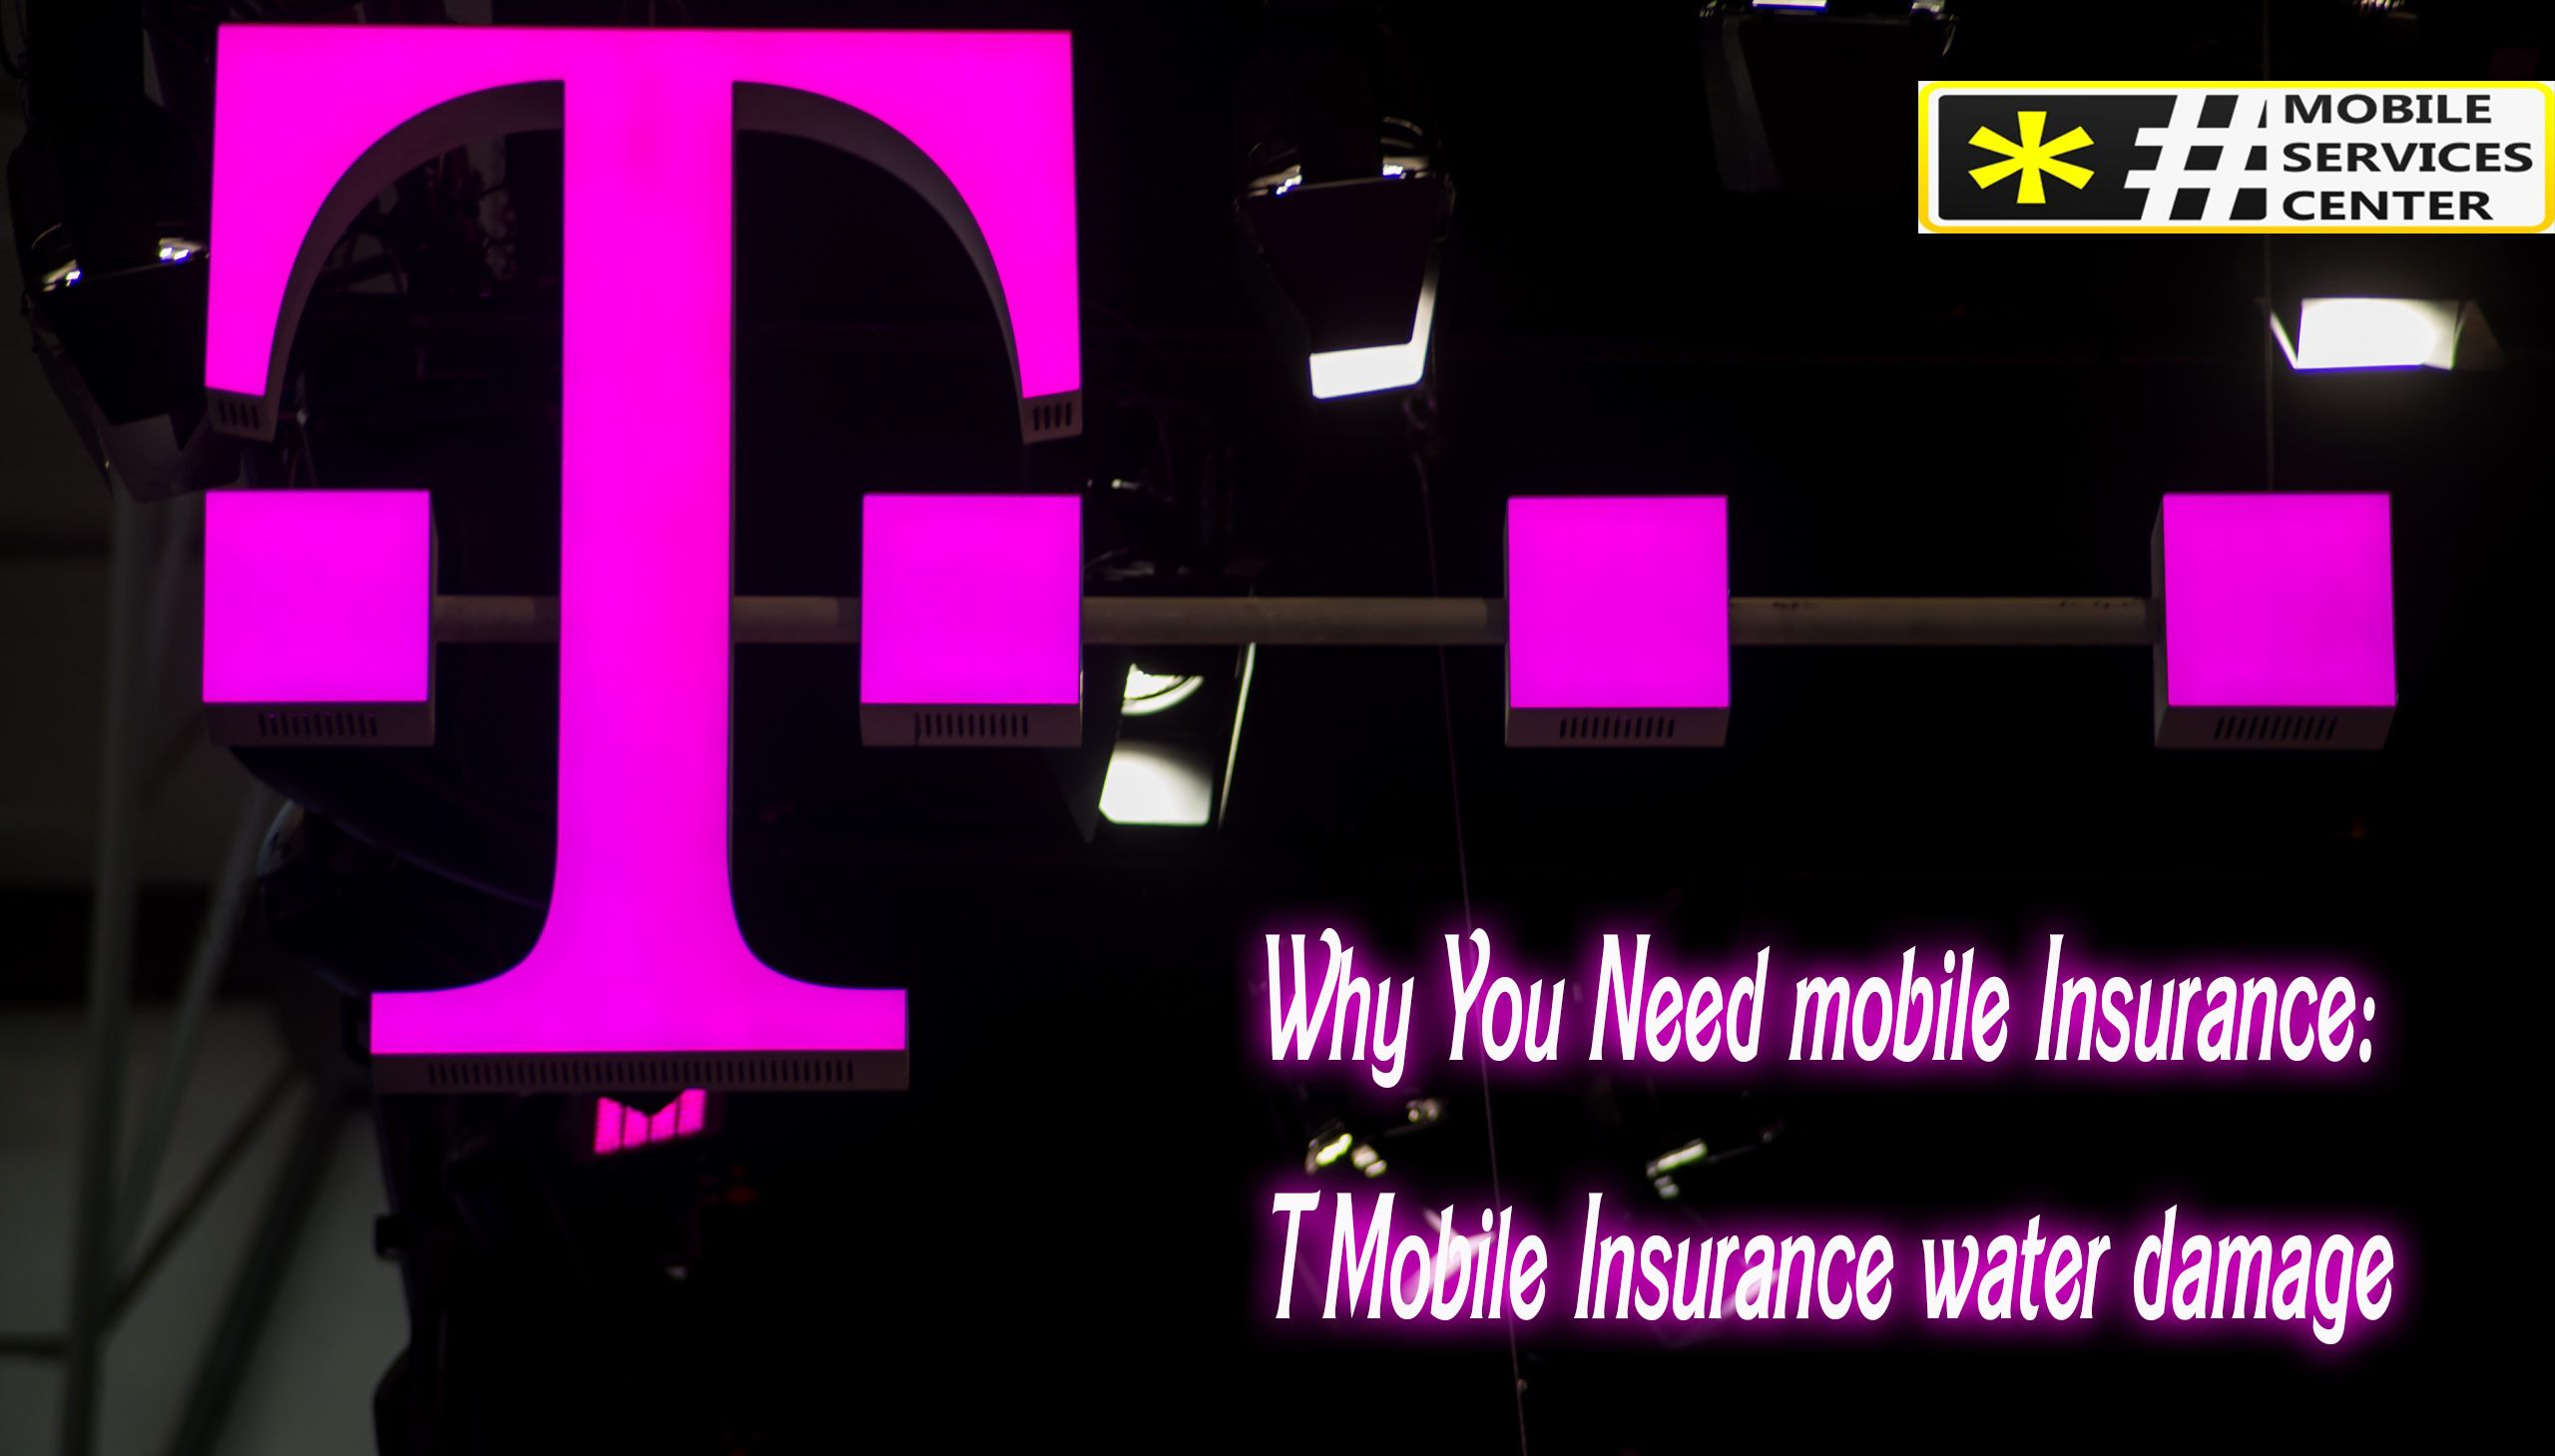 Why You Need Mobile Insurance T Mobile Water Damage Insurance Water Damage Mobile